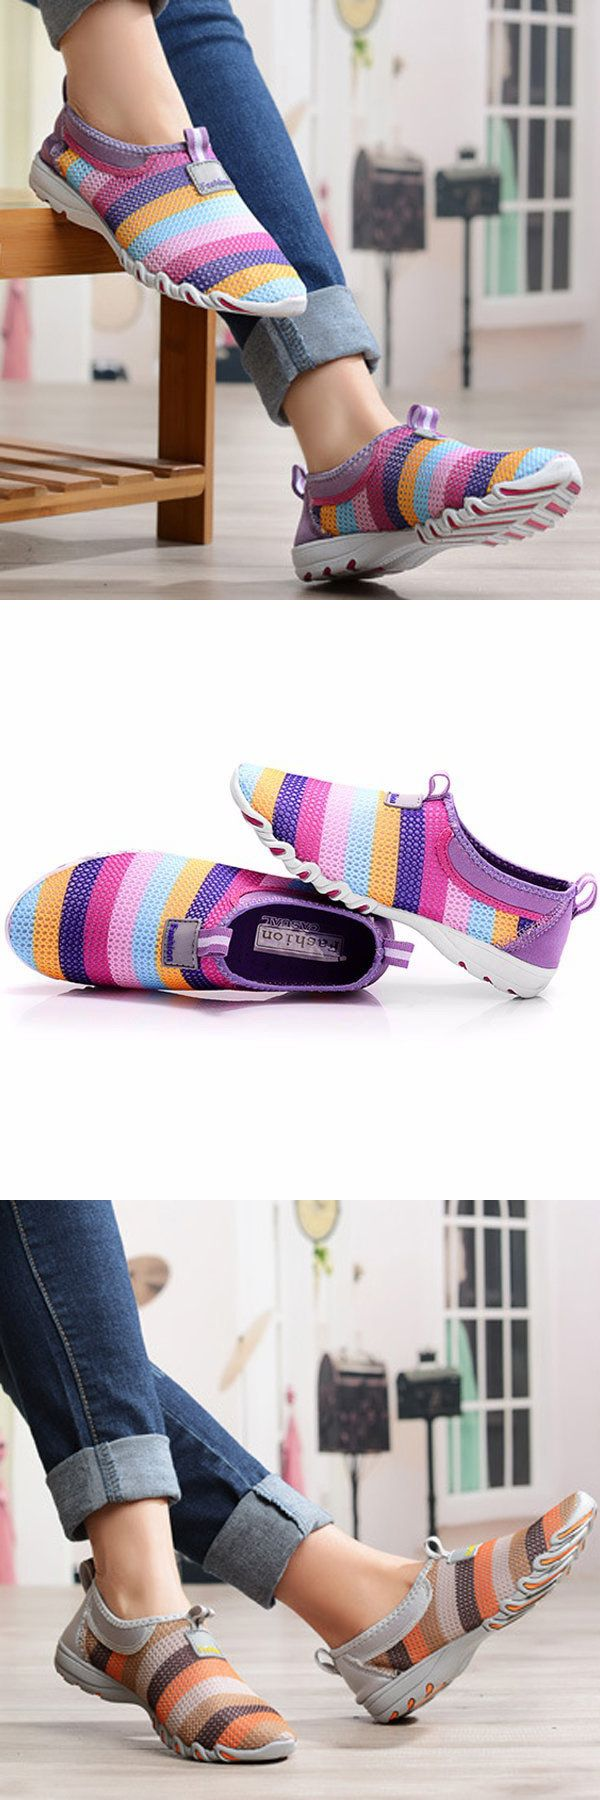 US$27.43 + Free shipping. US Size 5-13 Female Sports Shoes, Comfy, Breathable.Color: Red, Purple, Gray. A colorful gift for the coming summer!